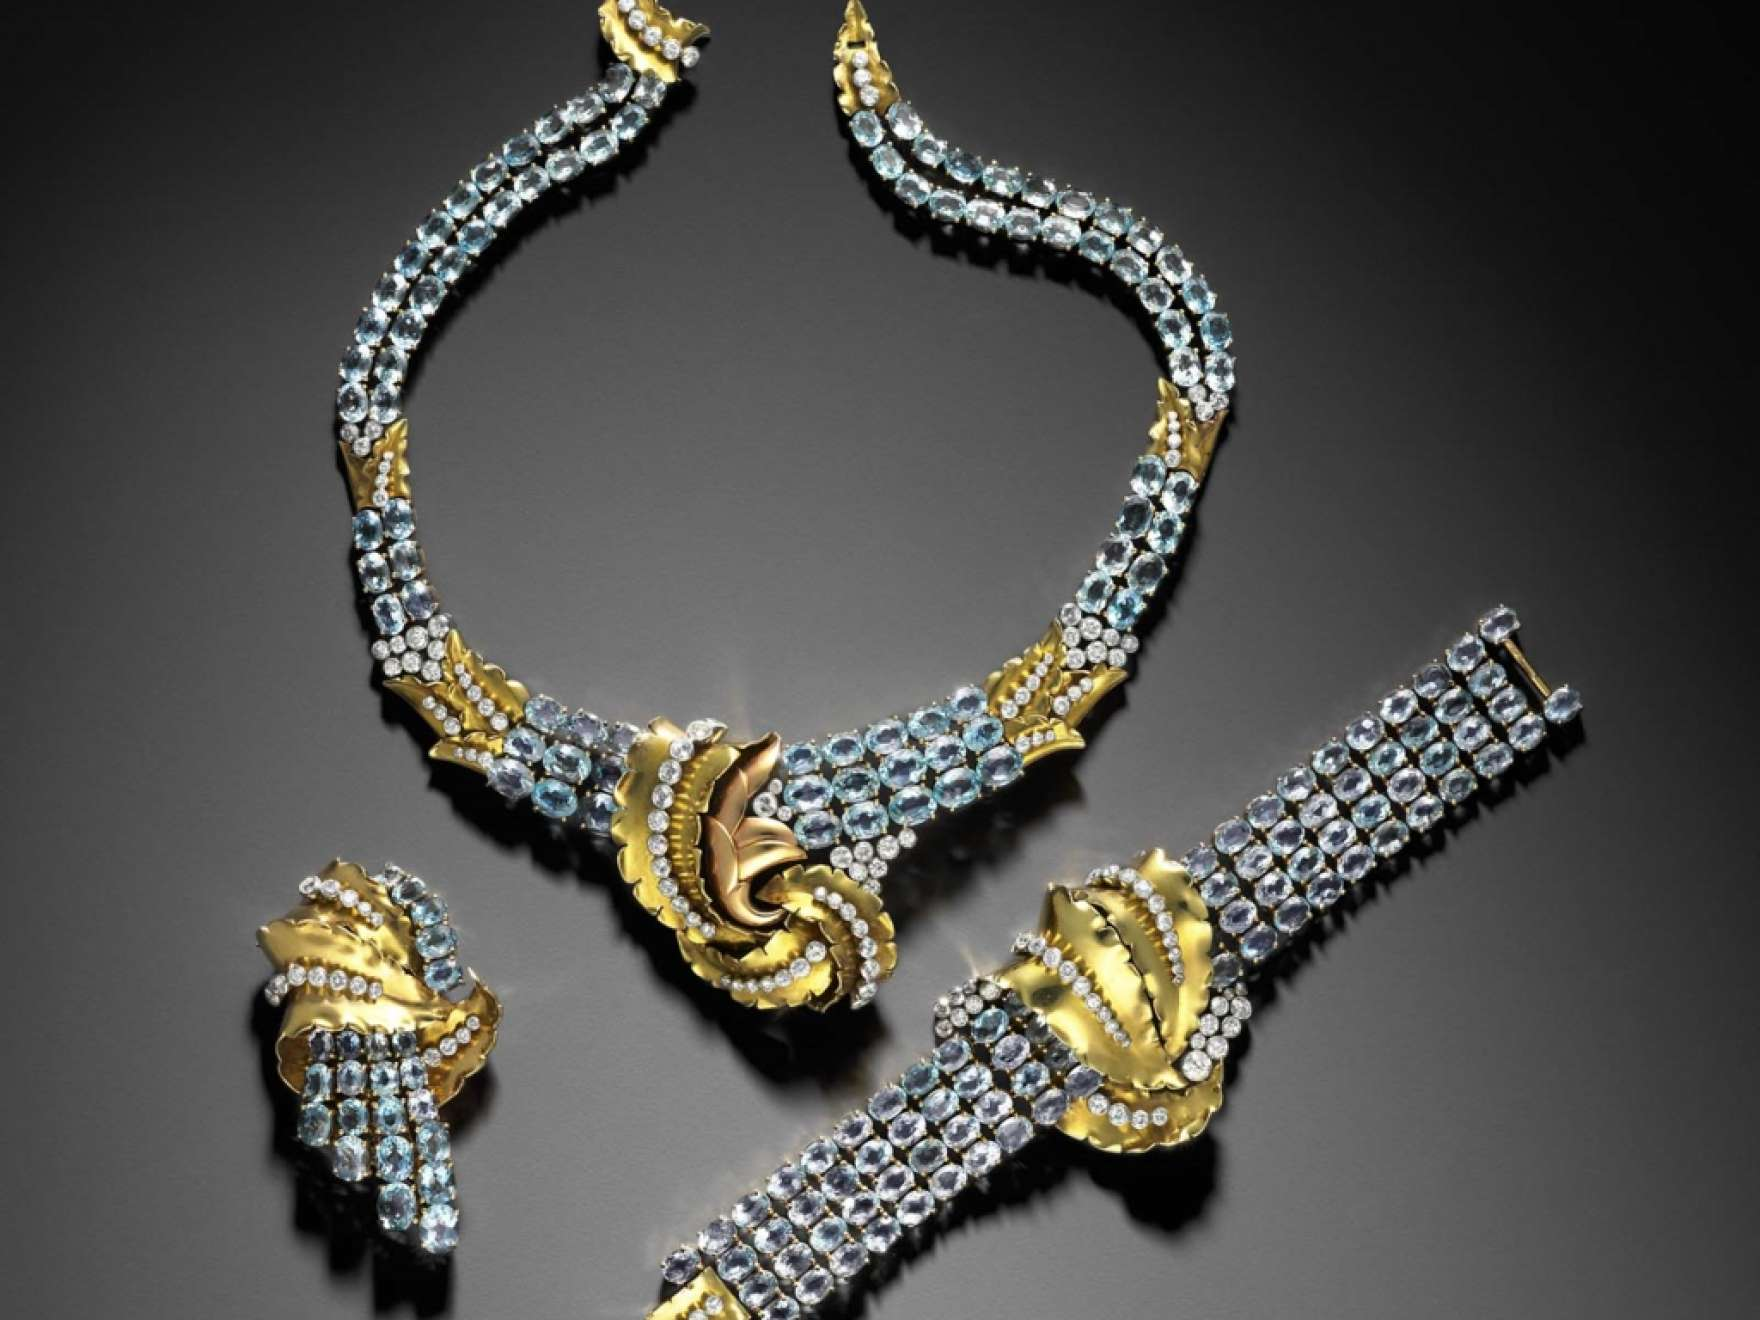 Brooch, necklace and bracelet in Gold, diamond, and aquamarine made by Verger Freres and worn by Joan Crawford